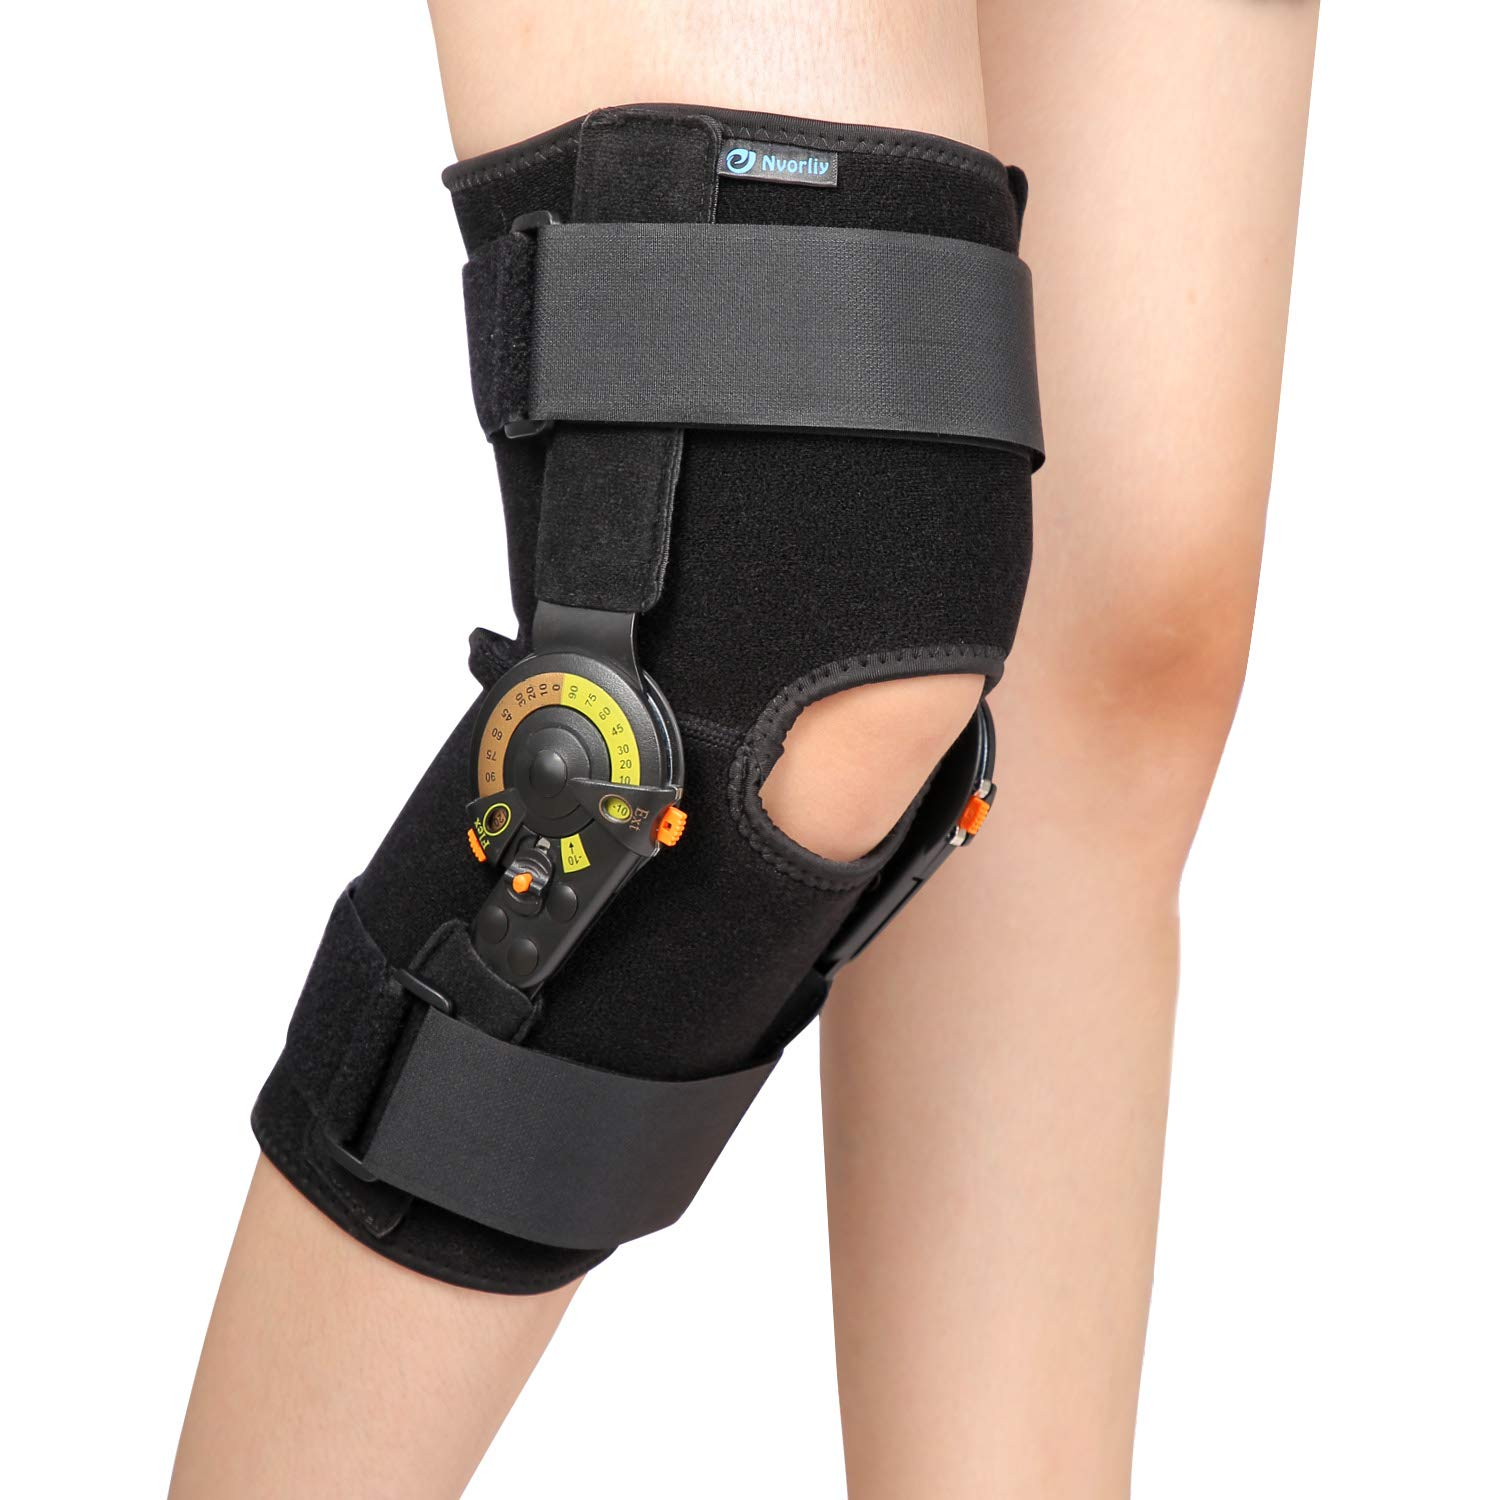 Nvorliy Hinged ROM Knee Brace Adjustable Knee Immobilizer Support for Arthritis, ACL, PCL, Meniscus Tear, Tendon, Osteoarthritis, Post OP Recovery - Leg Stabilizer for Men & Women - One Size by Nvorliy